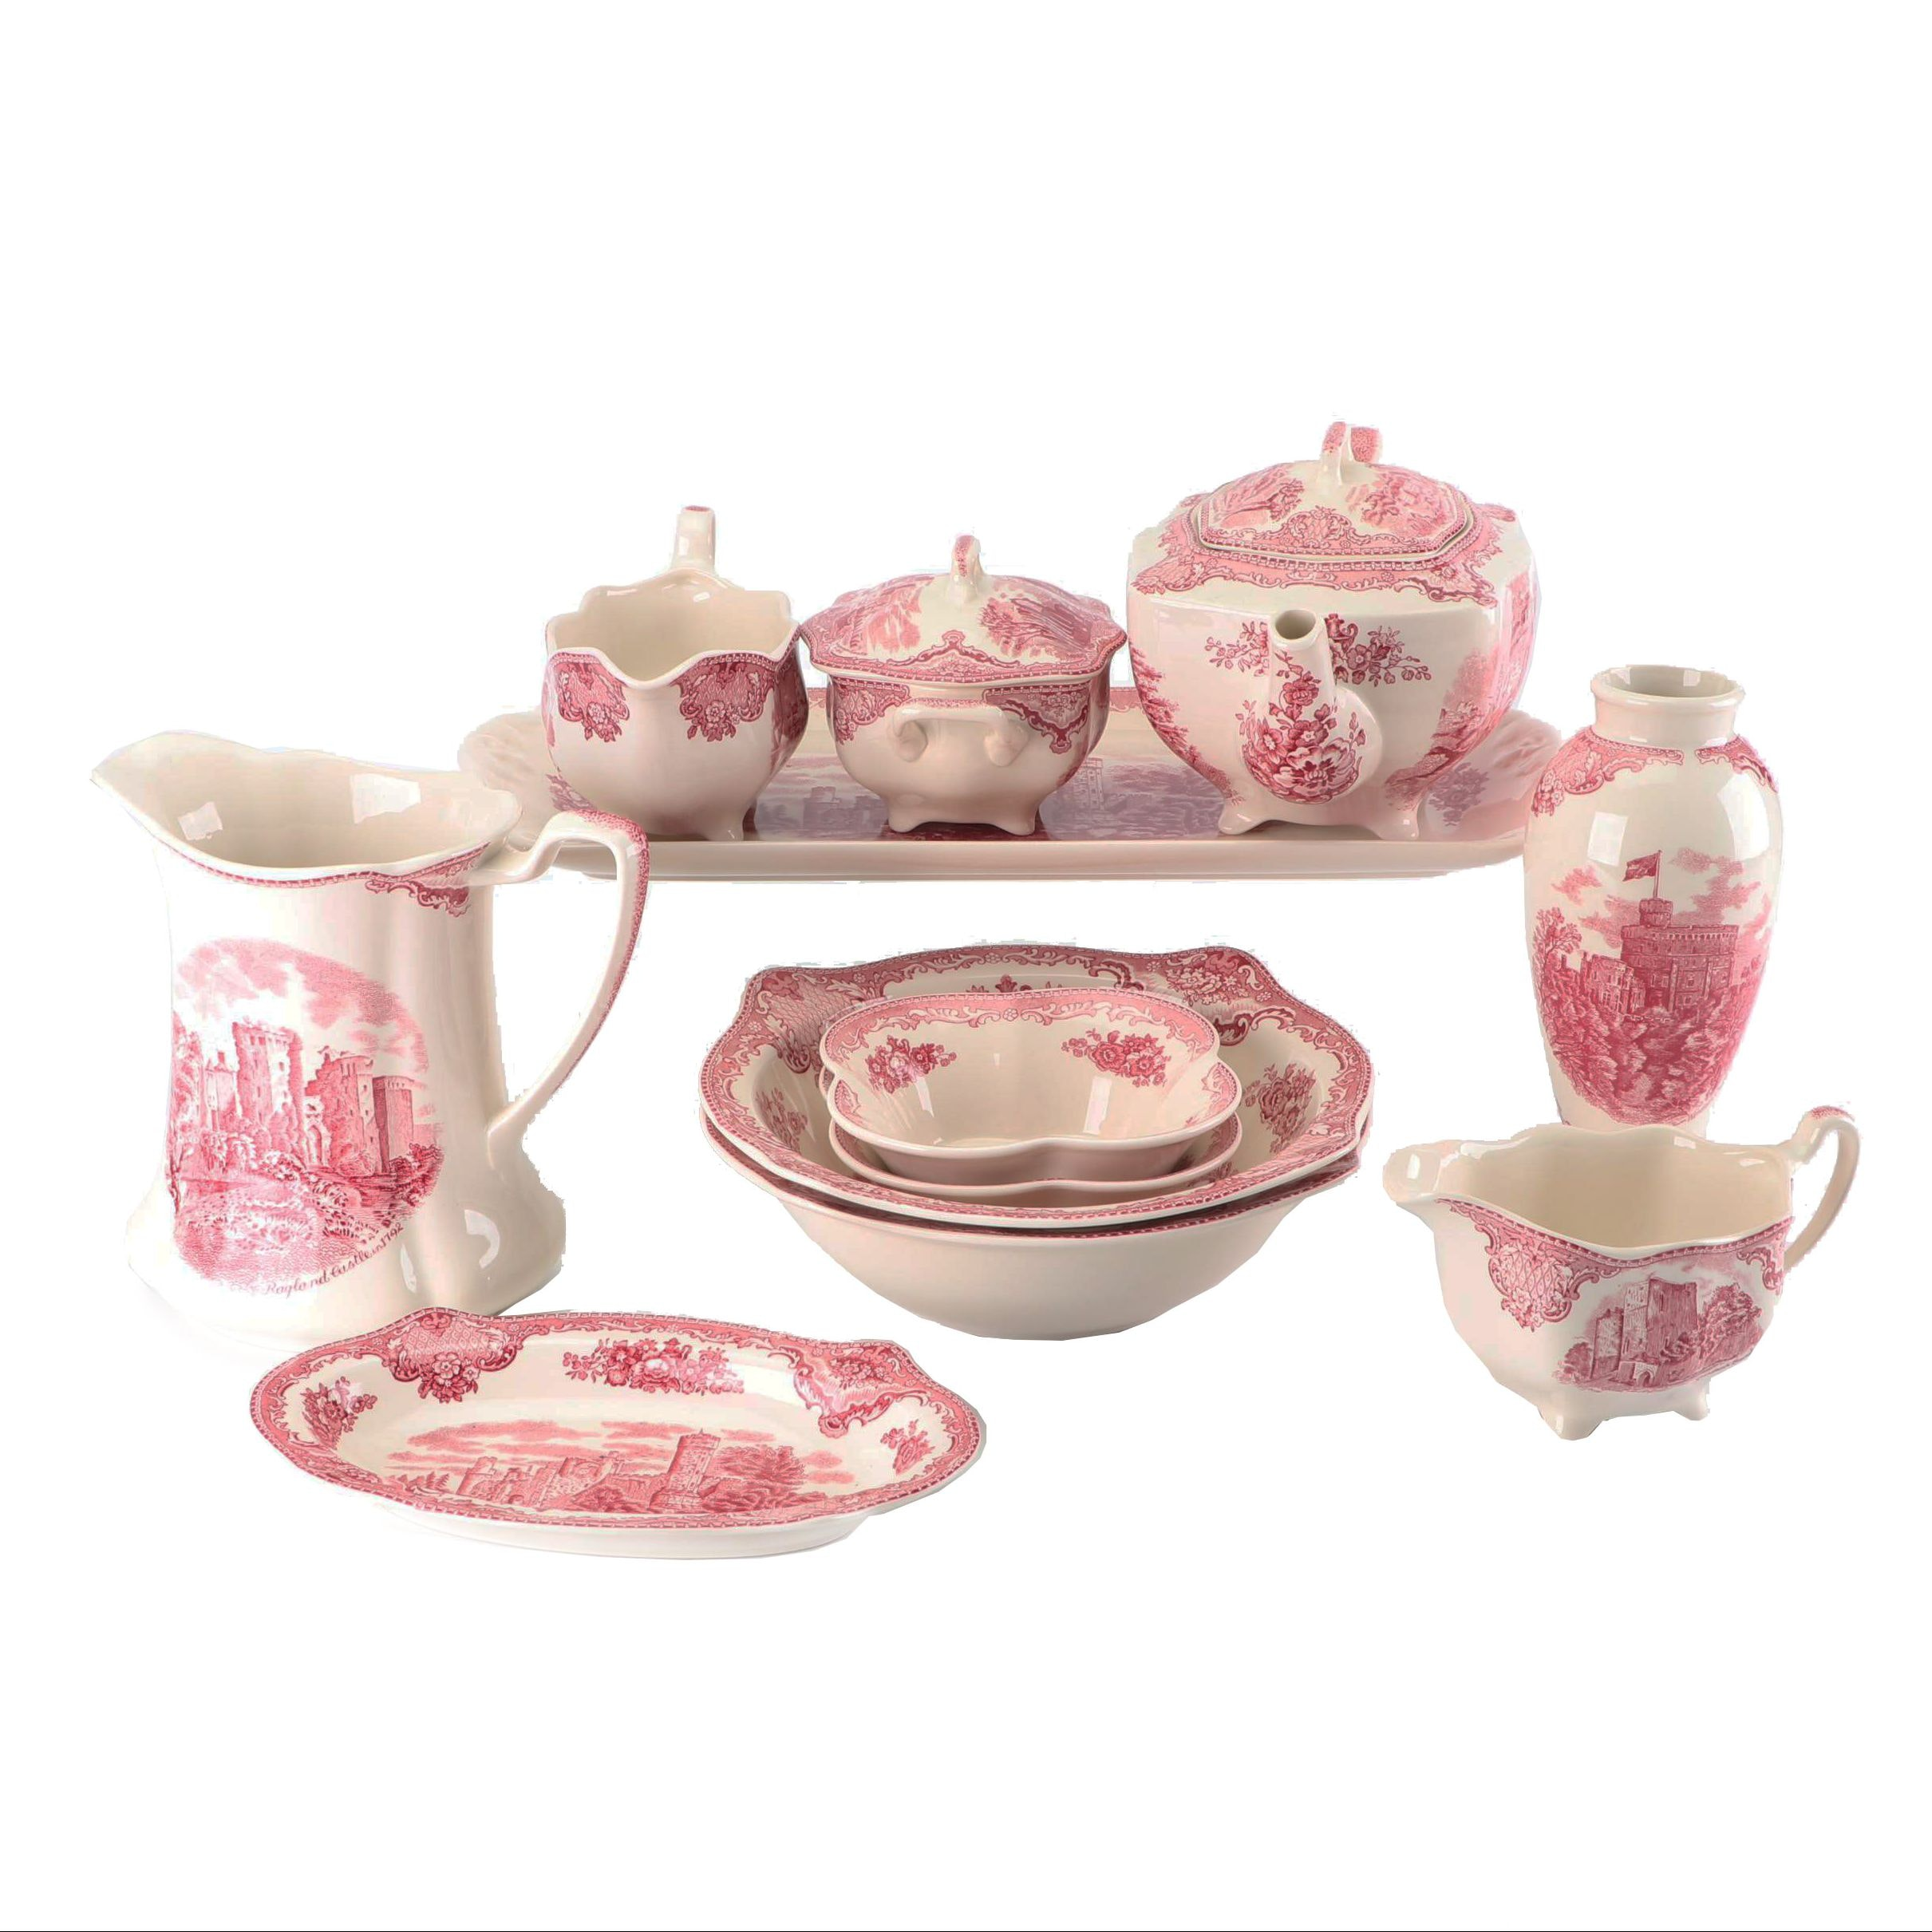 """Johnson Brothers """"Old Britain Castles"""" Pink Serveware and Vase"""